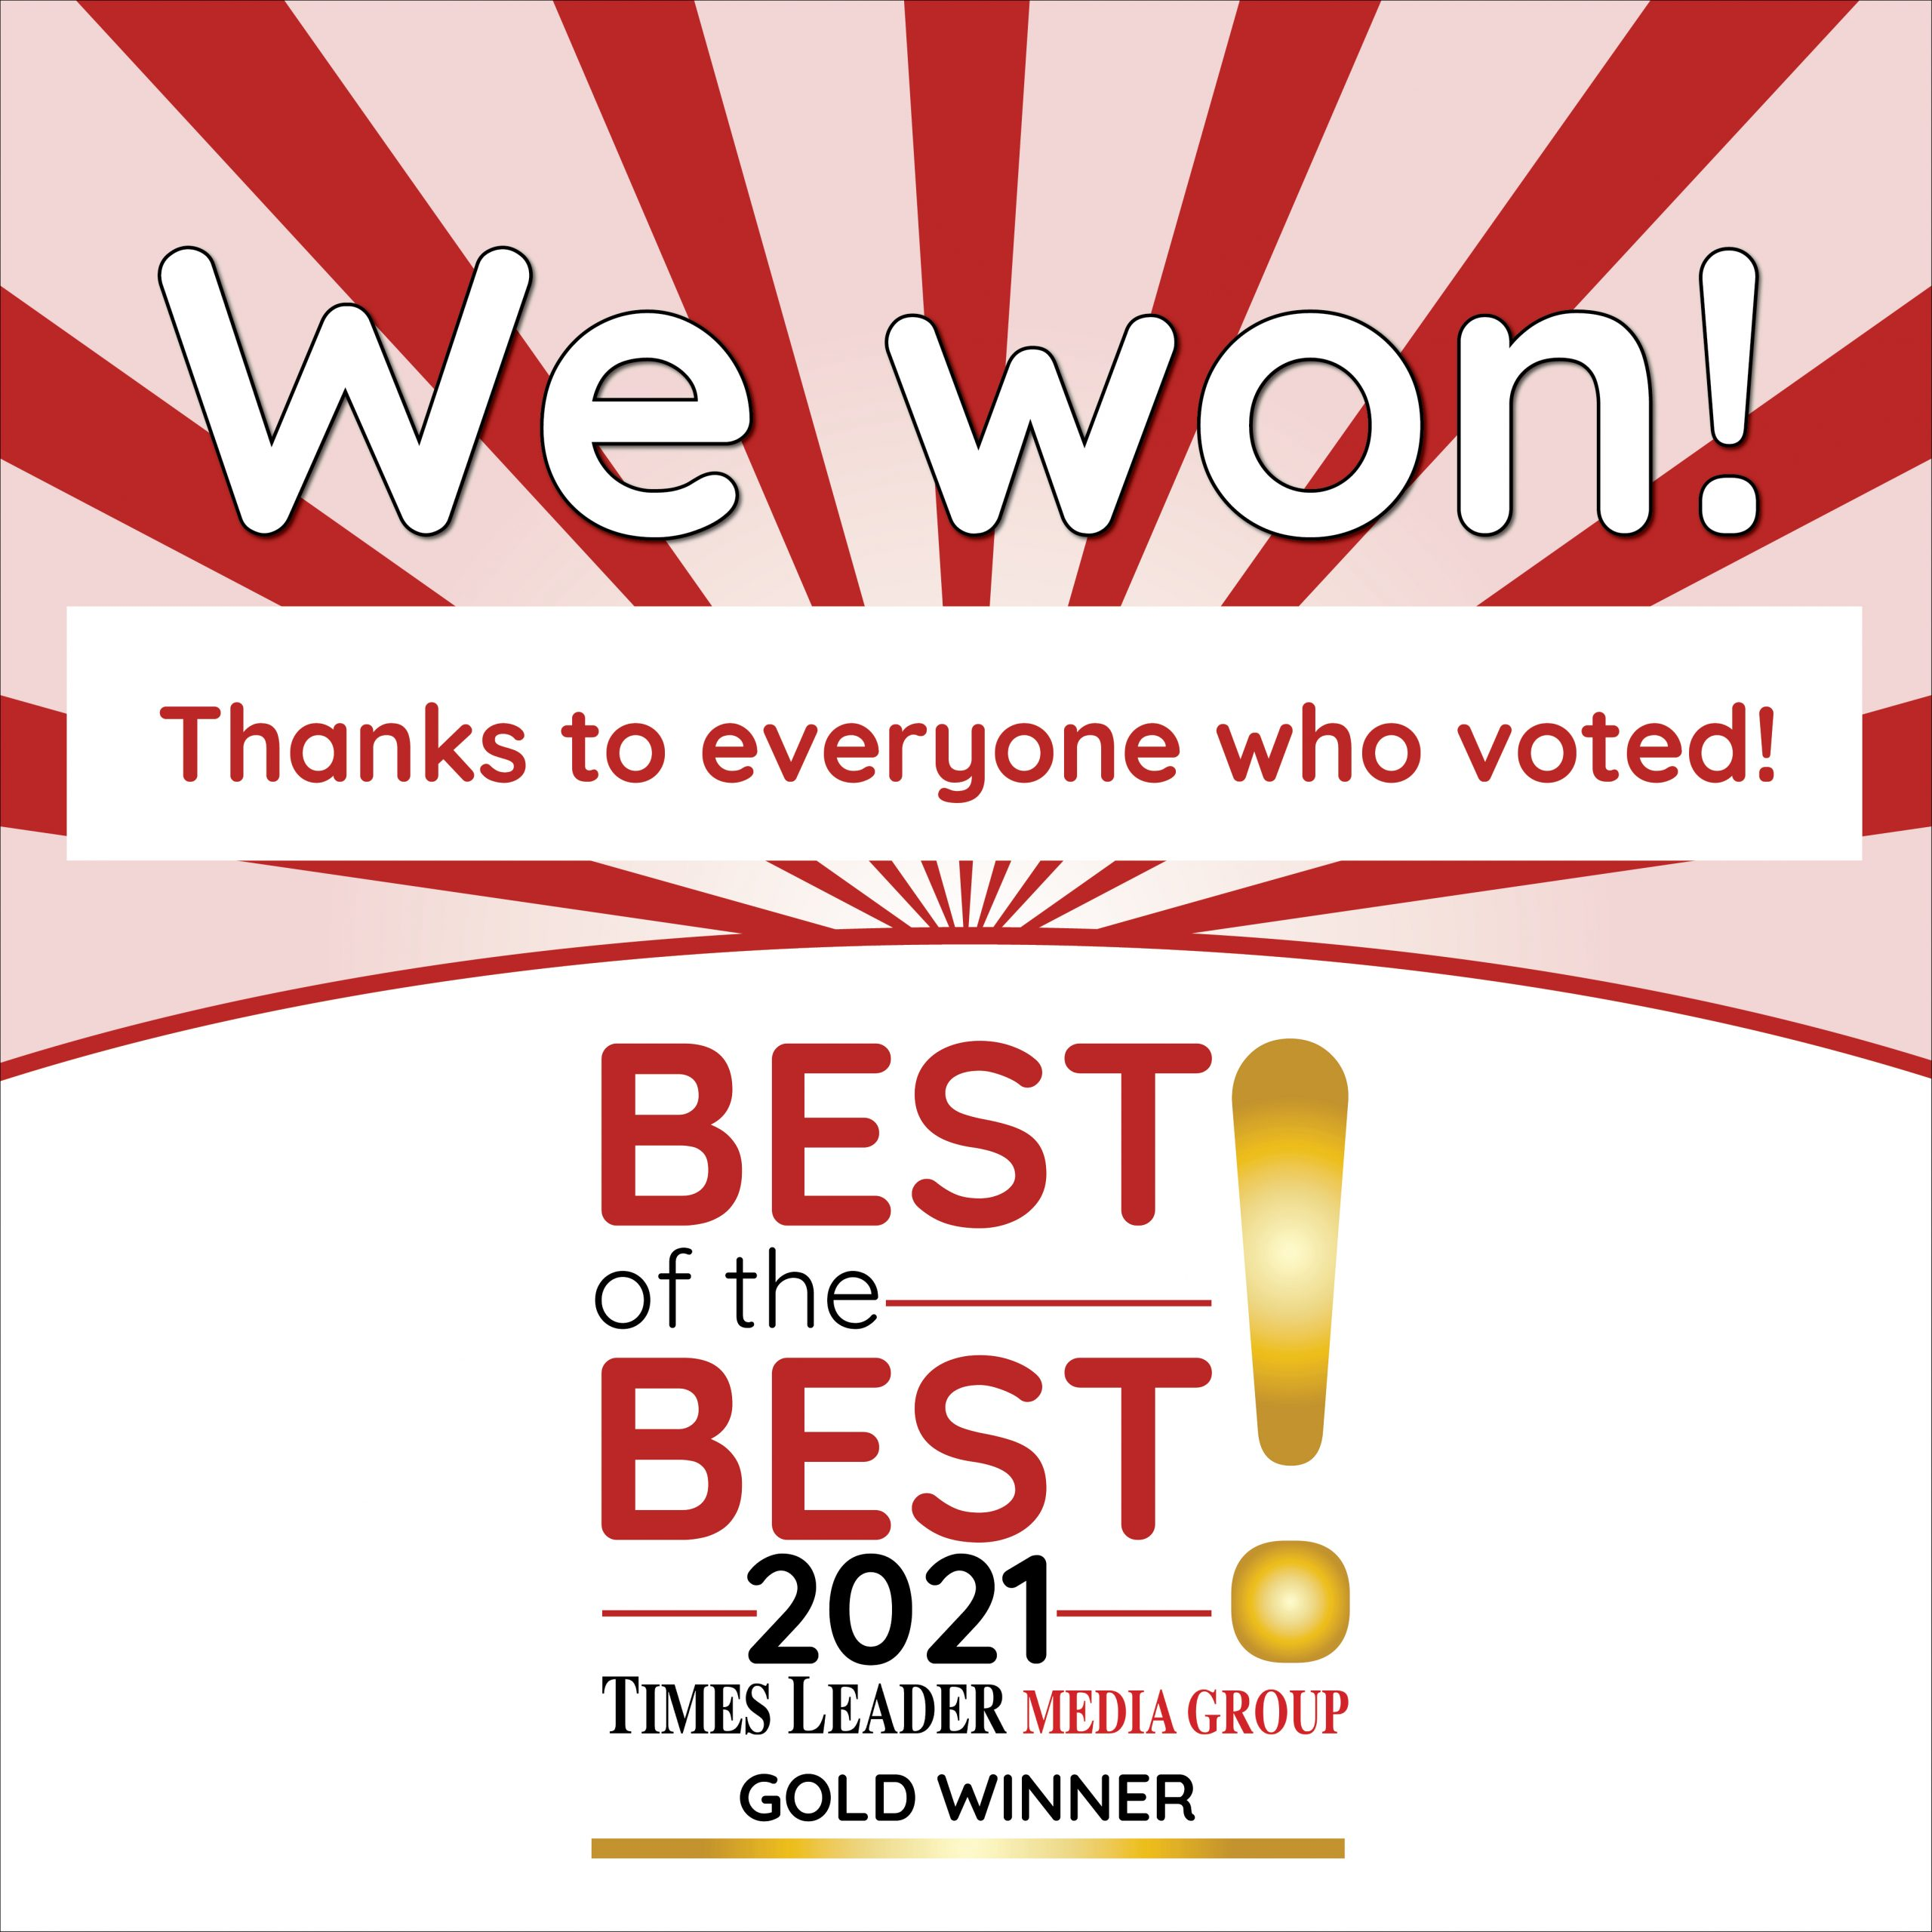 Dr. Brown won the Gold and LVDA won the Silver in the Times Leader Best of the Best Promotion